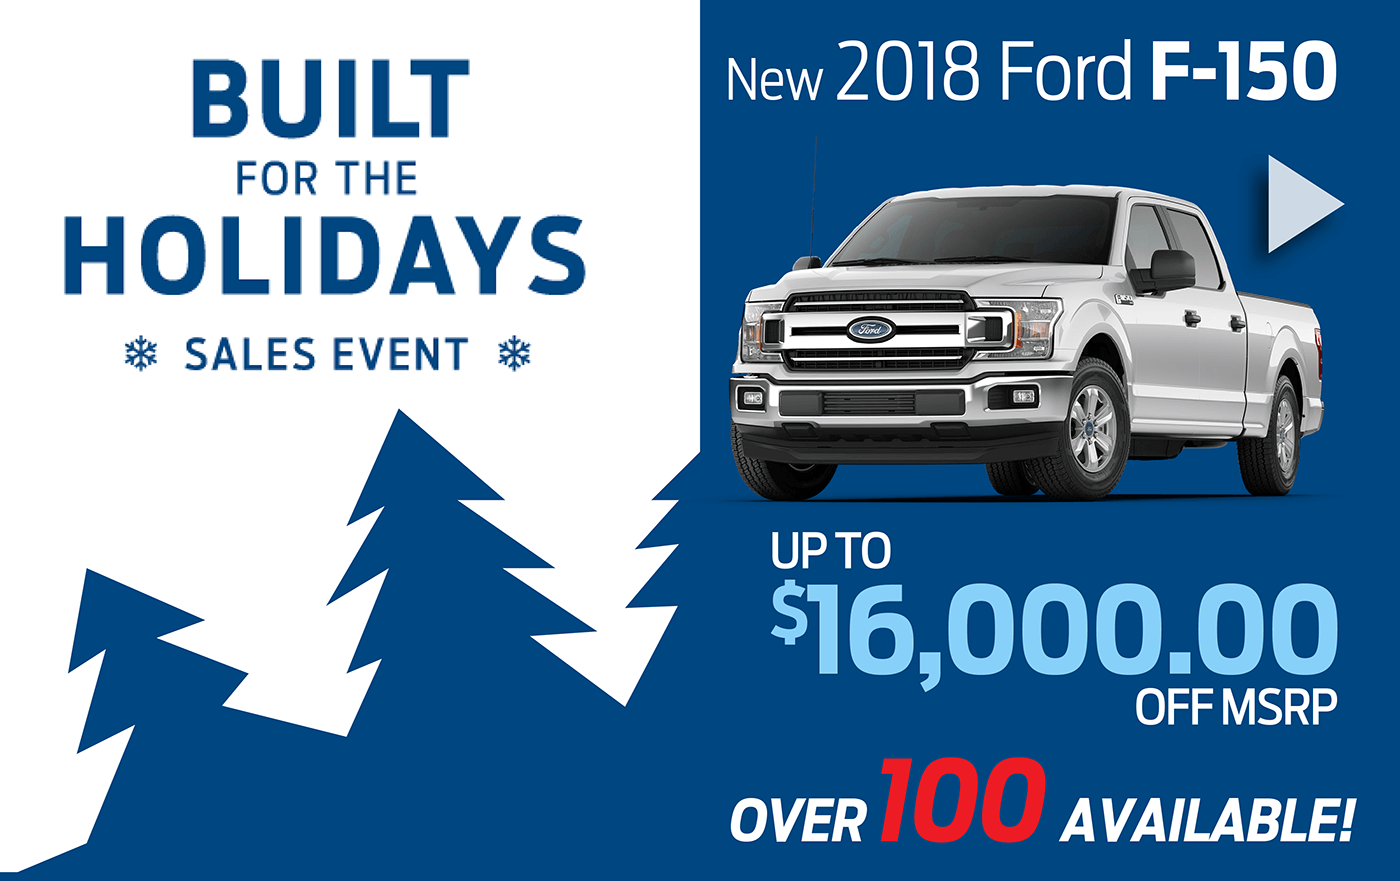 F-150 Special Offer